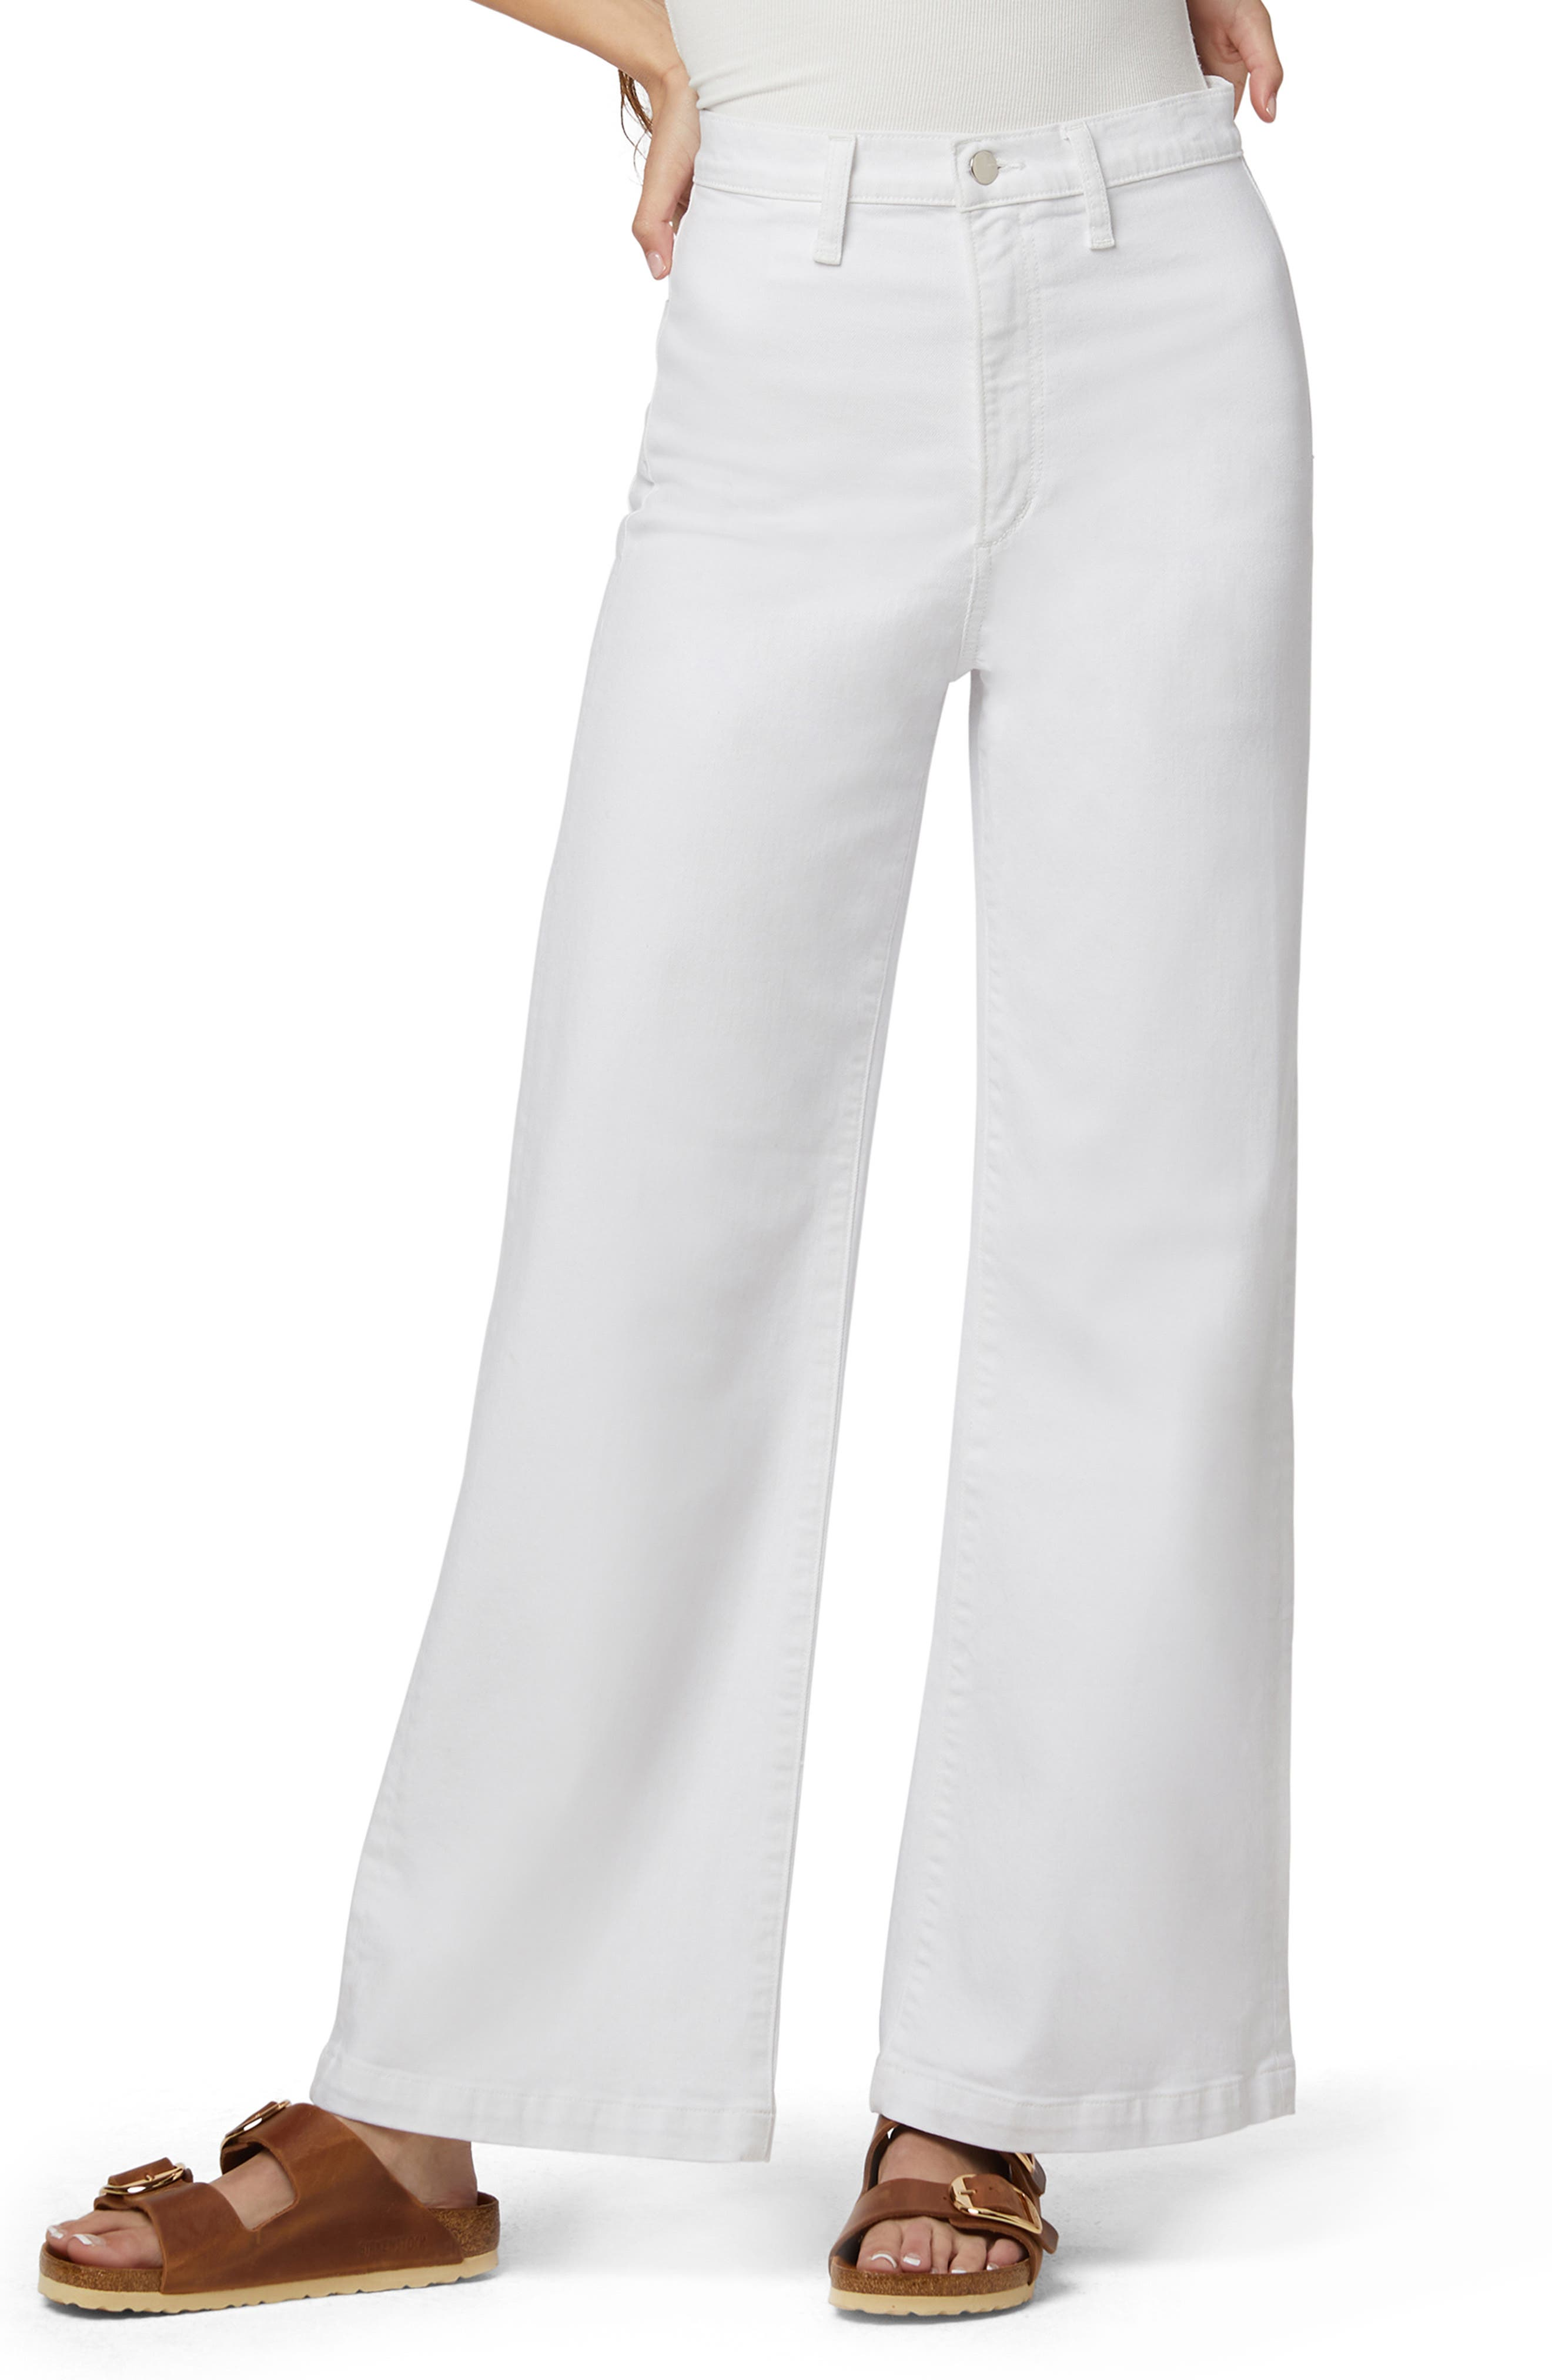 The Mischa Wide Straight Leg Jeans